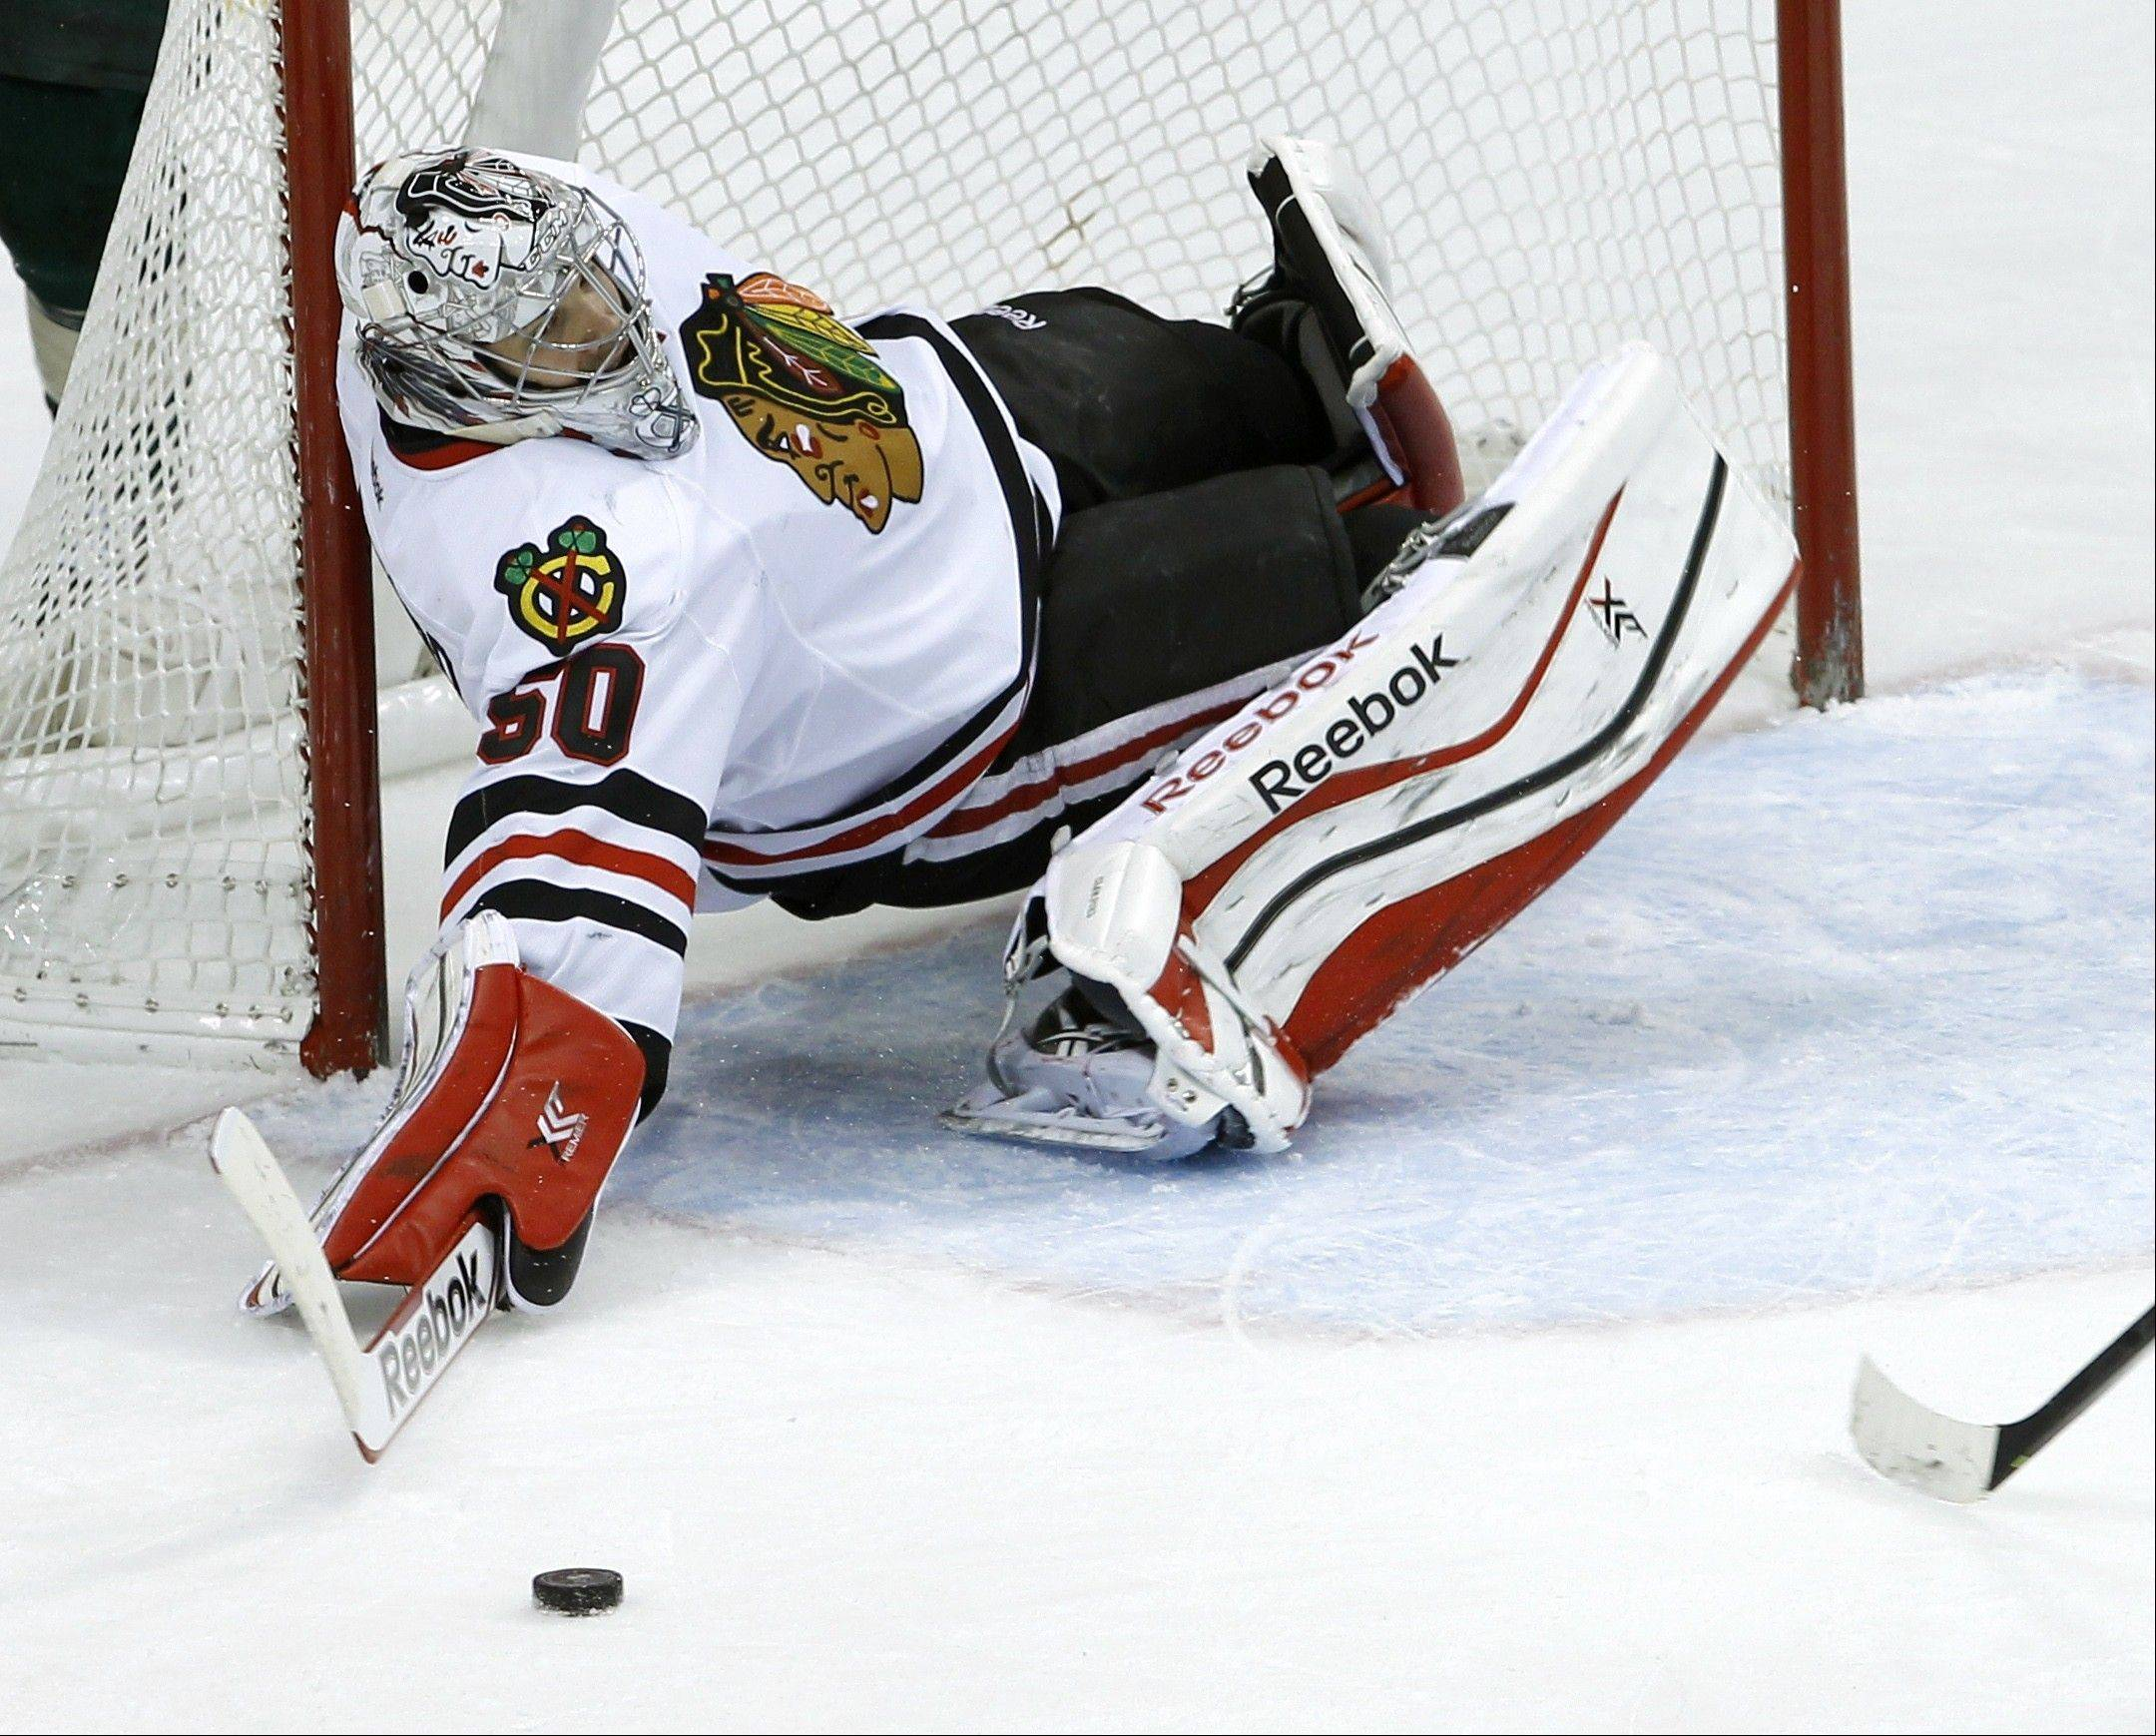 Associated Press Blackhawks goalie Corey Crawford (50) falls over backwards to stop a shot by the Minnesota Wild during the third period of an NHL hockey game in St. Paul, Minn., Thursday. The Wild beat the Blackhawks 4-3.